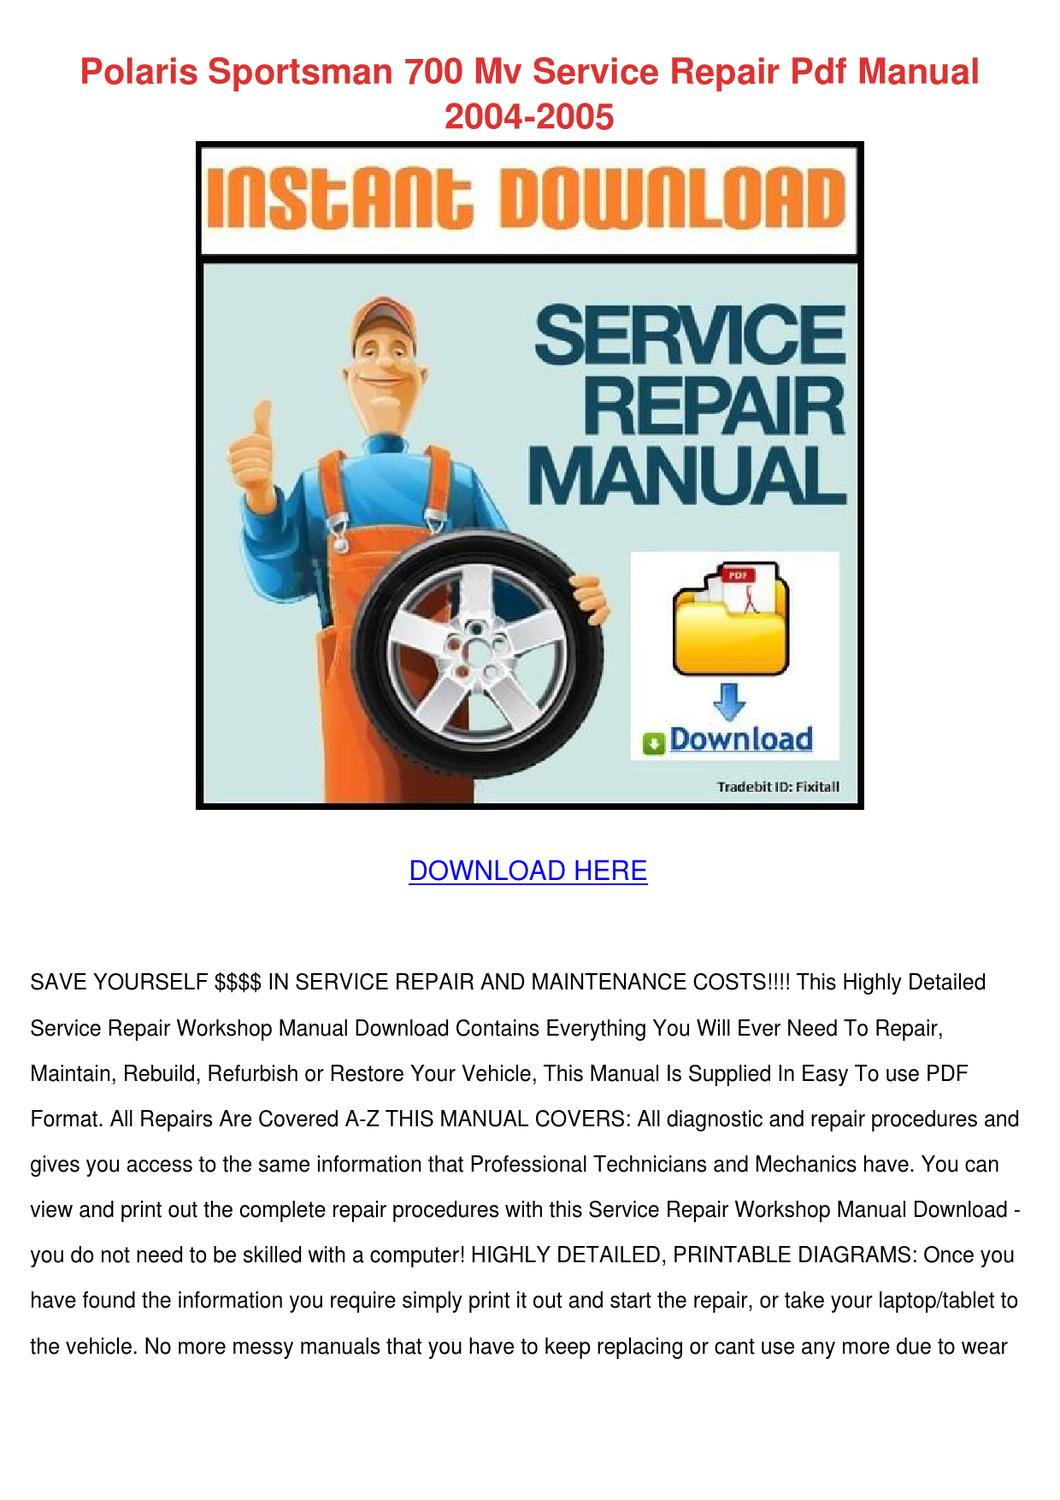 Polaris Sportsman 700 Mv Service Repair Pdf M By Normanmaple Issuu 2004 Fuel Filter